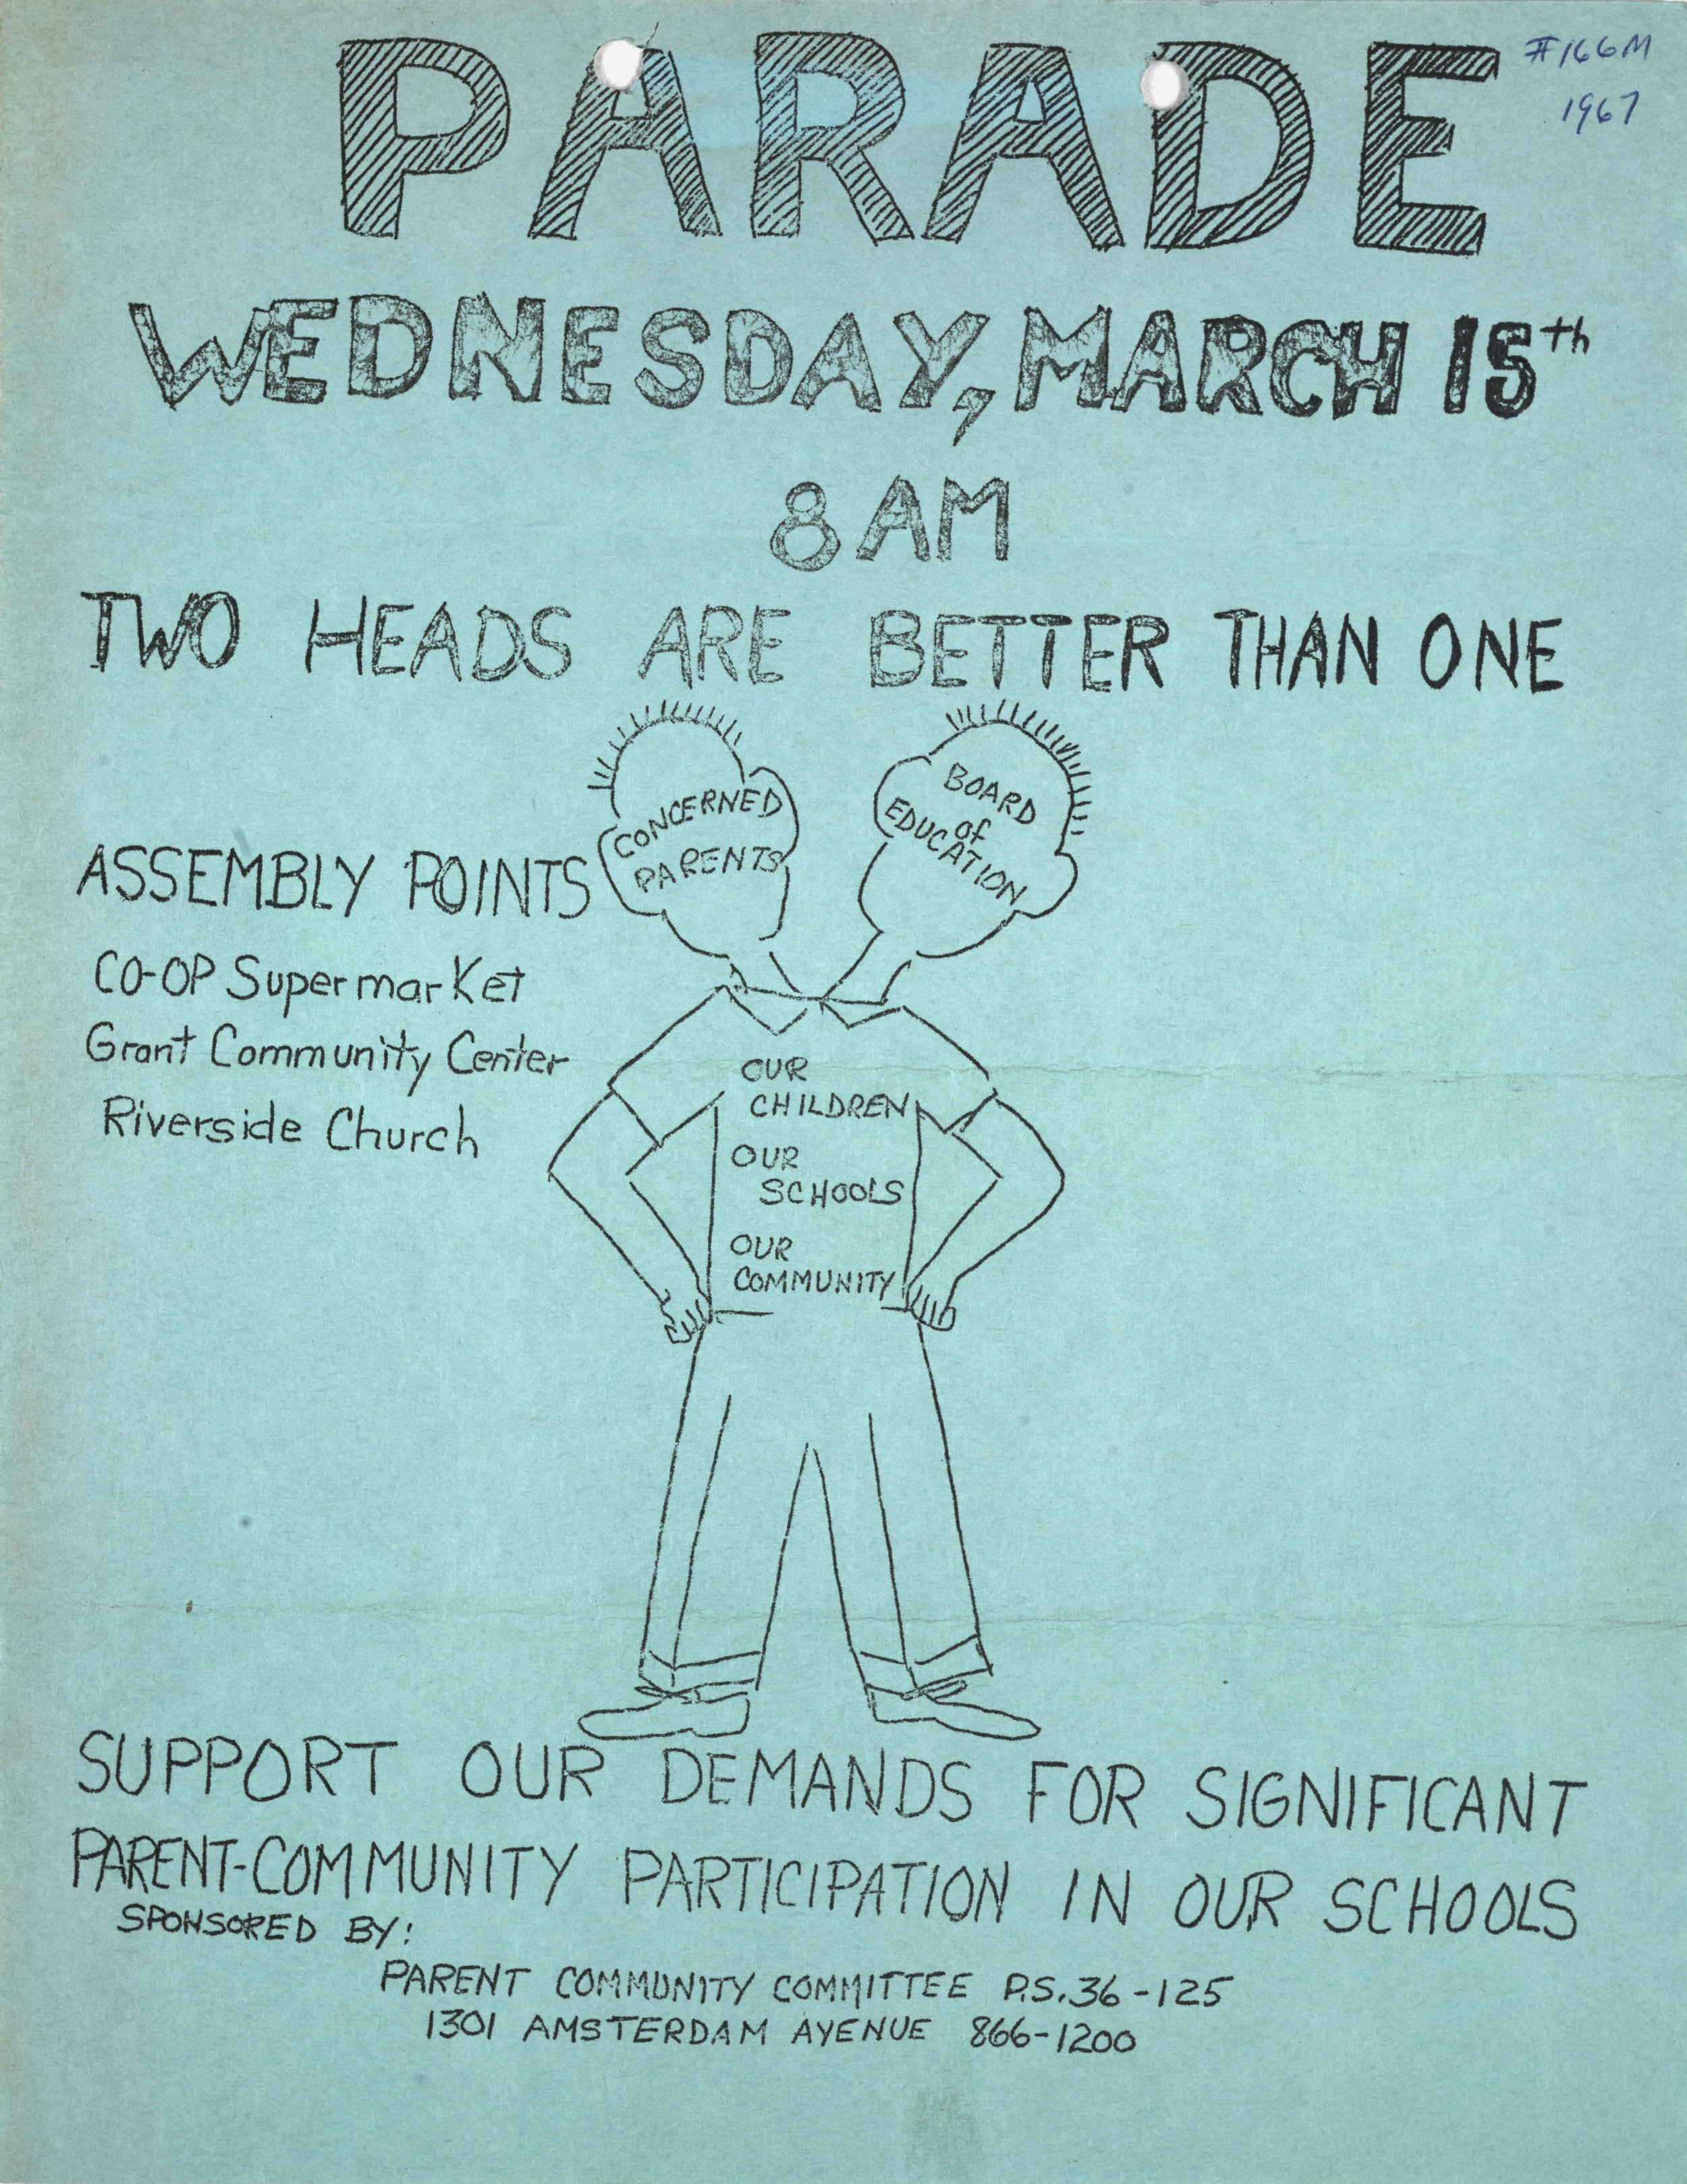 Parent Committee Parade Flyer, 1967